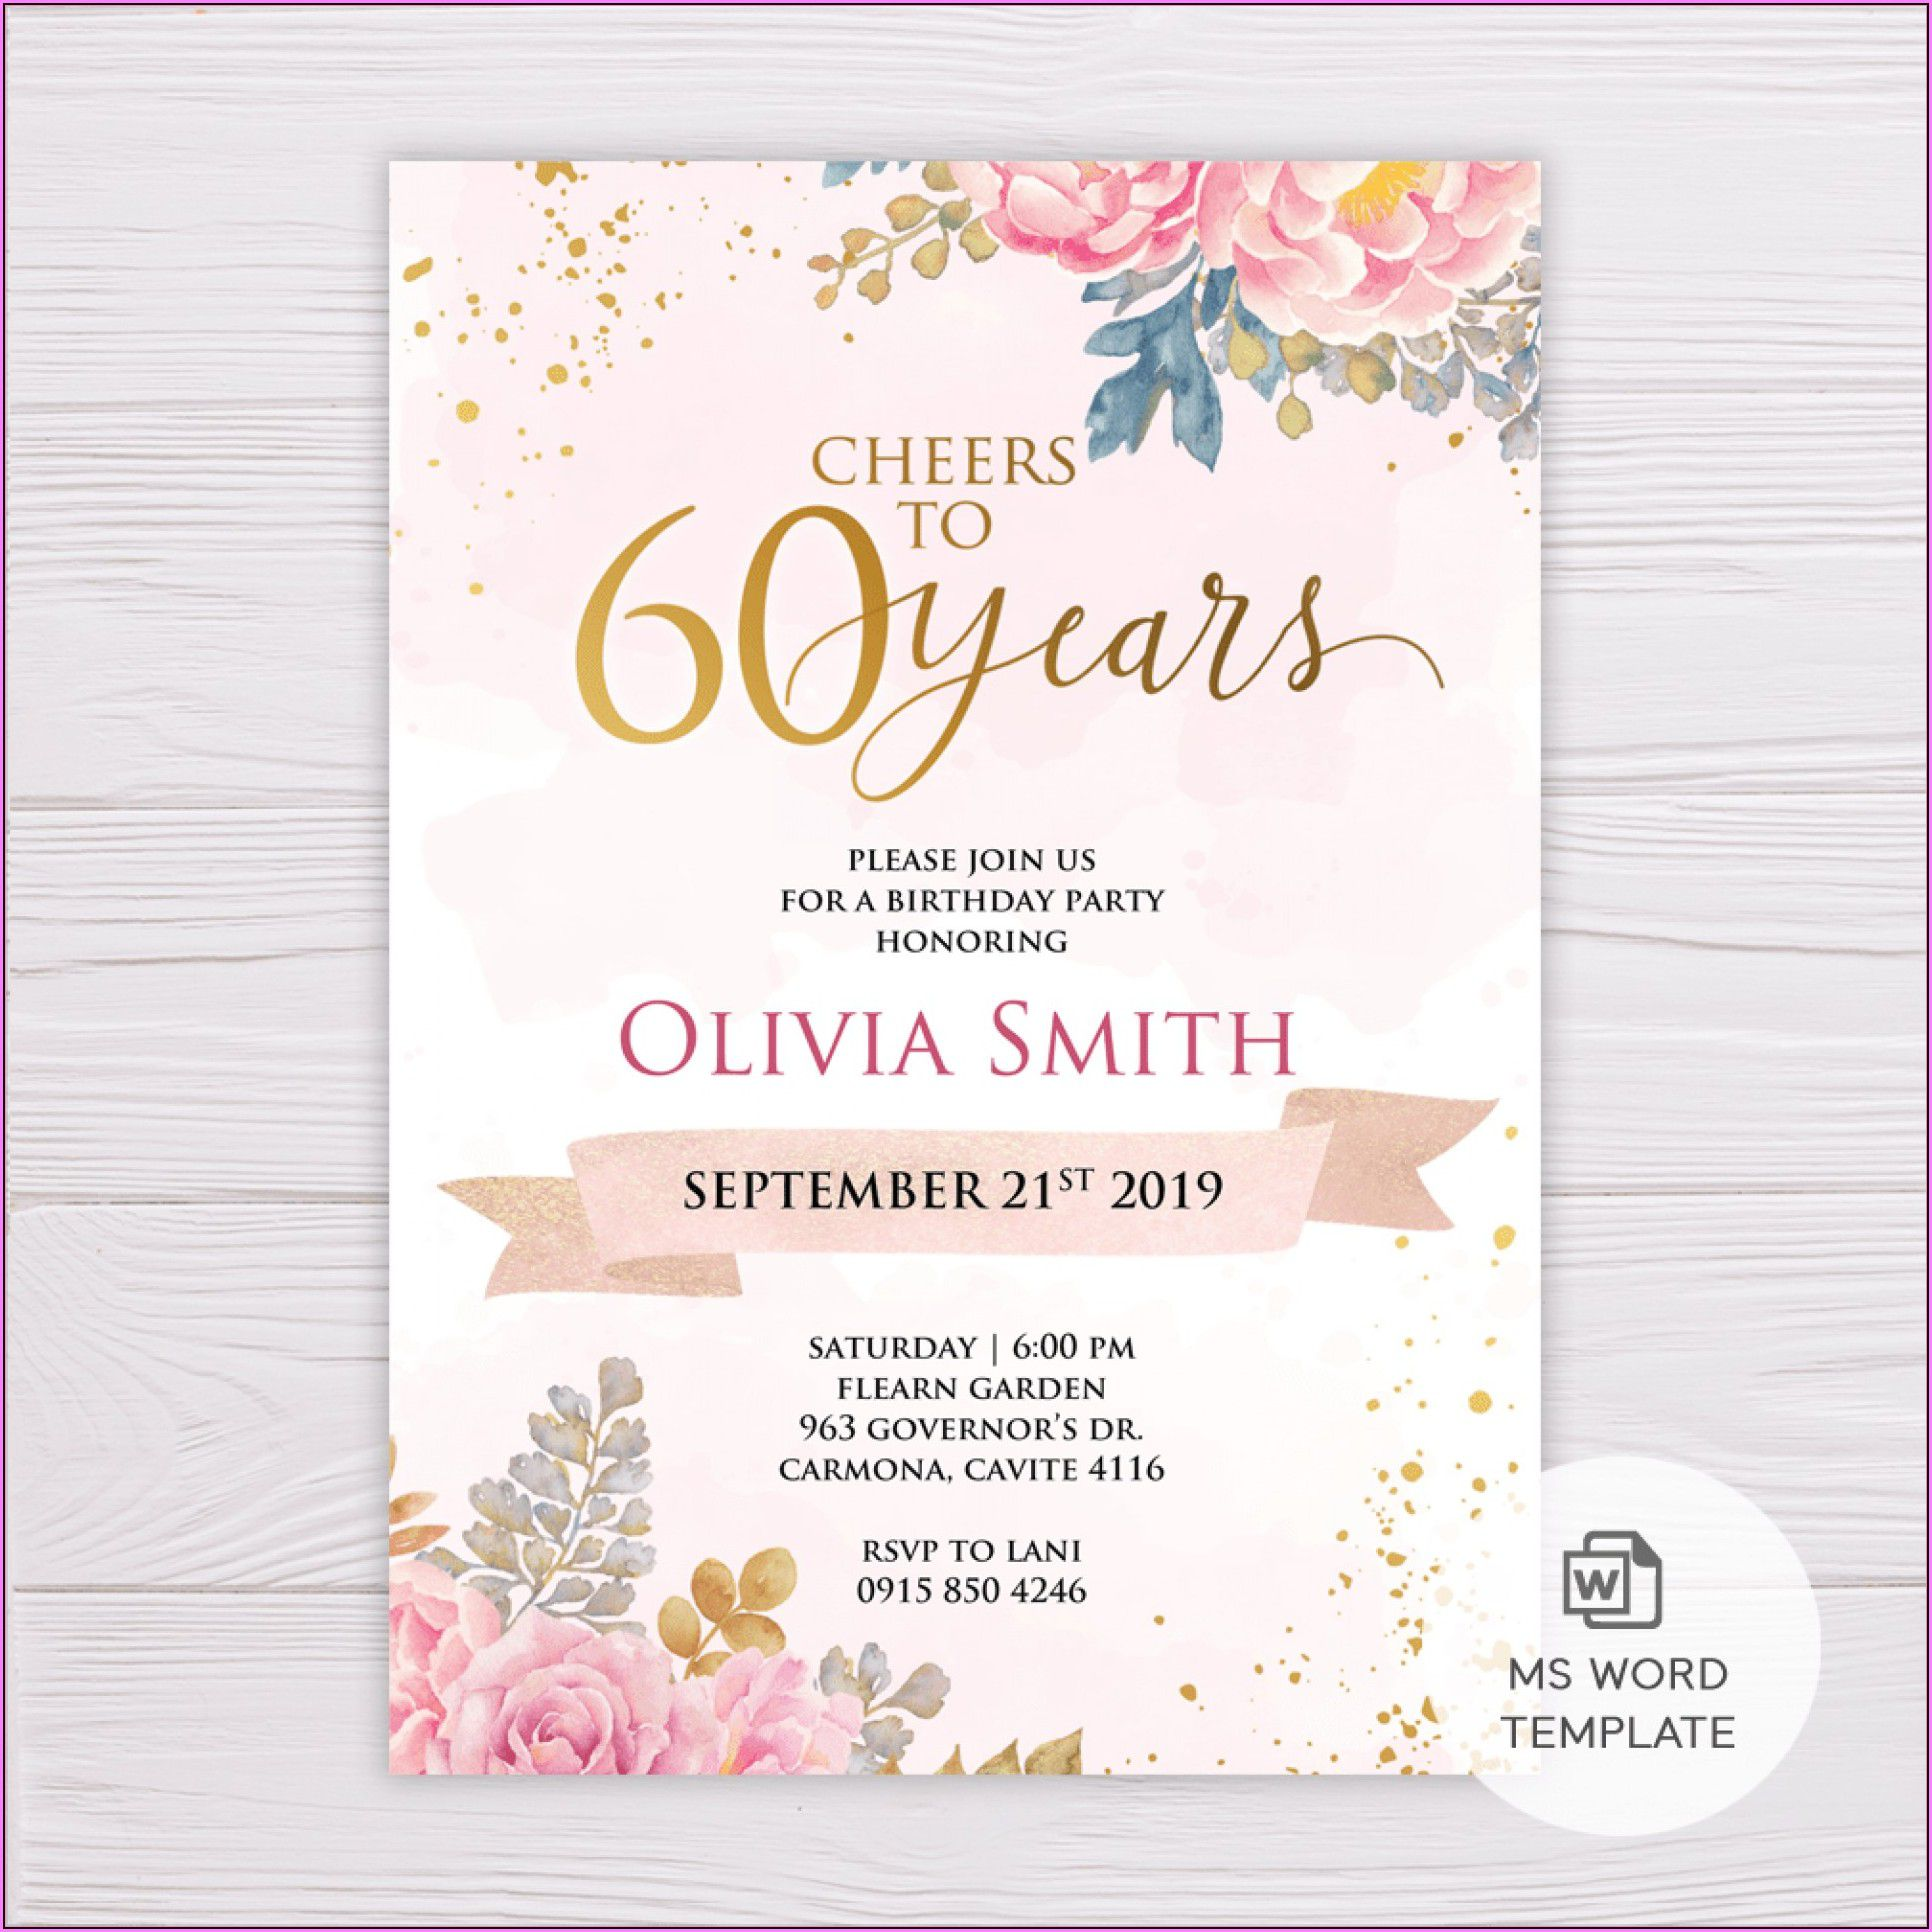 008 Rare 60th Birthday Invite Template Highest Clarity  Templates Funny Invitation Free PartyFull